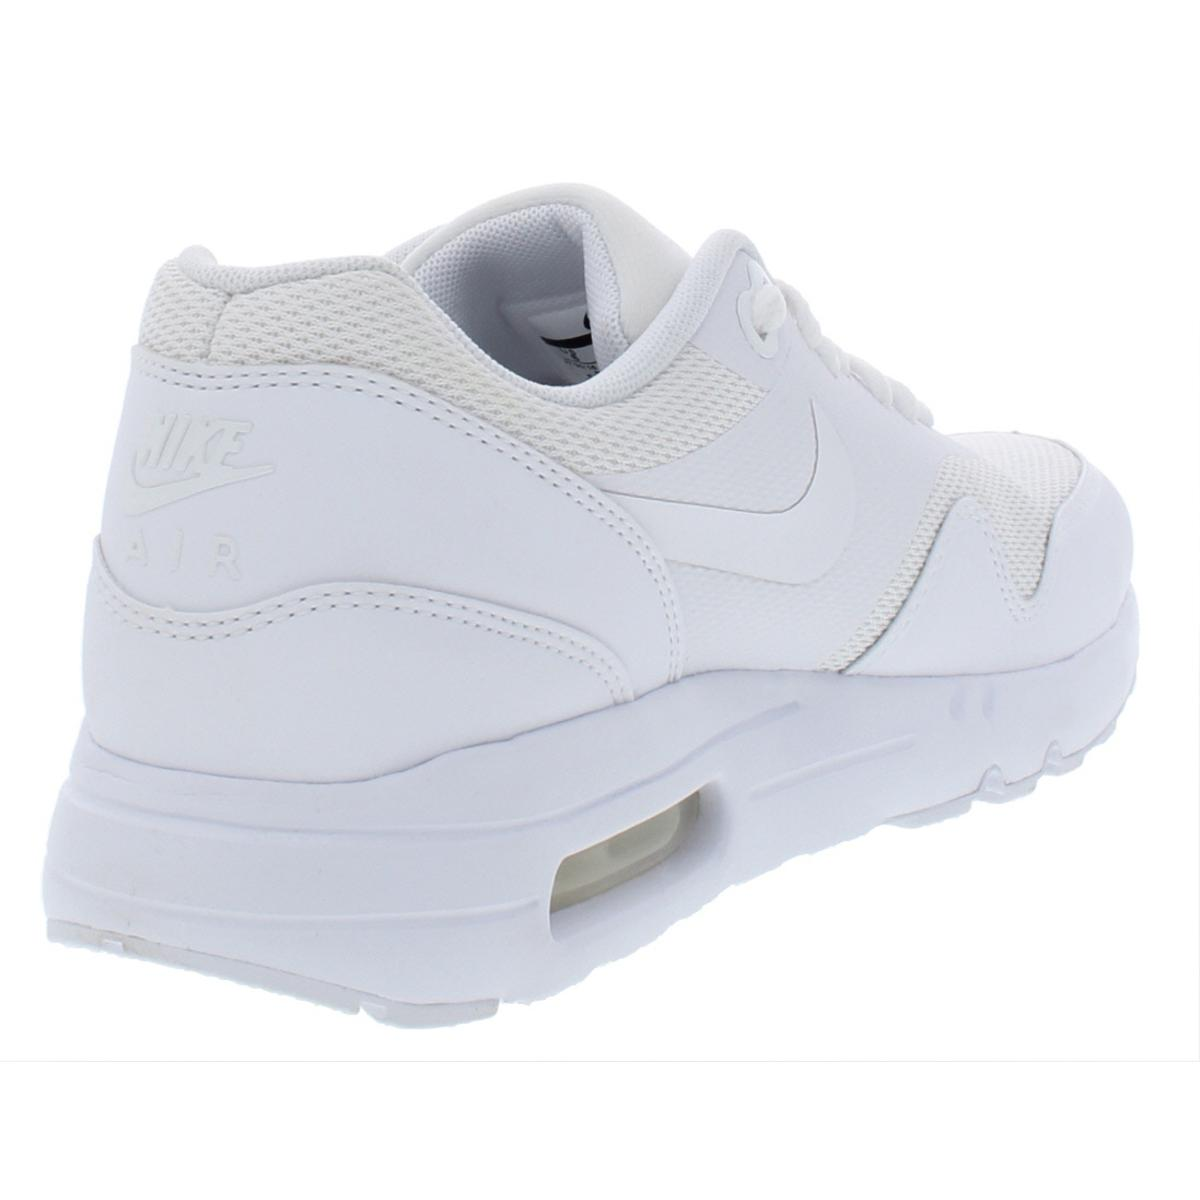 on sale 5b7b2 0824f Nike Air Max 1 Ultra 2.0 Essential 875679-100 White Pure Platinum DS Size  8.5. About this product. Picture 1 of 4  Picture 2 of 4  Picture 3 of 4   Picture 4 ...